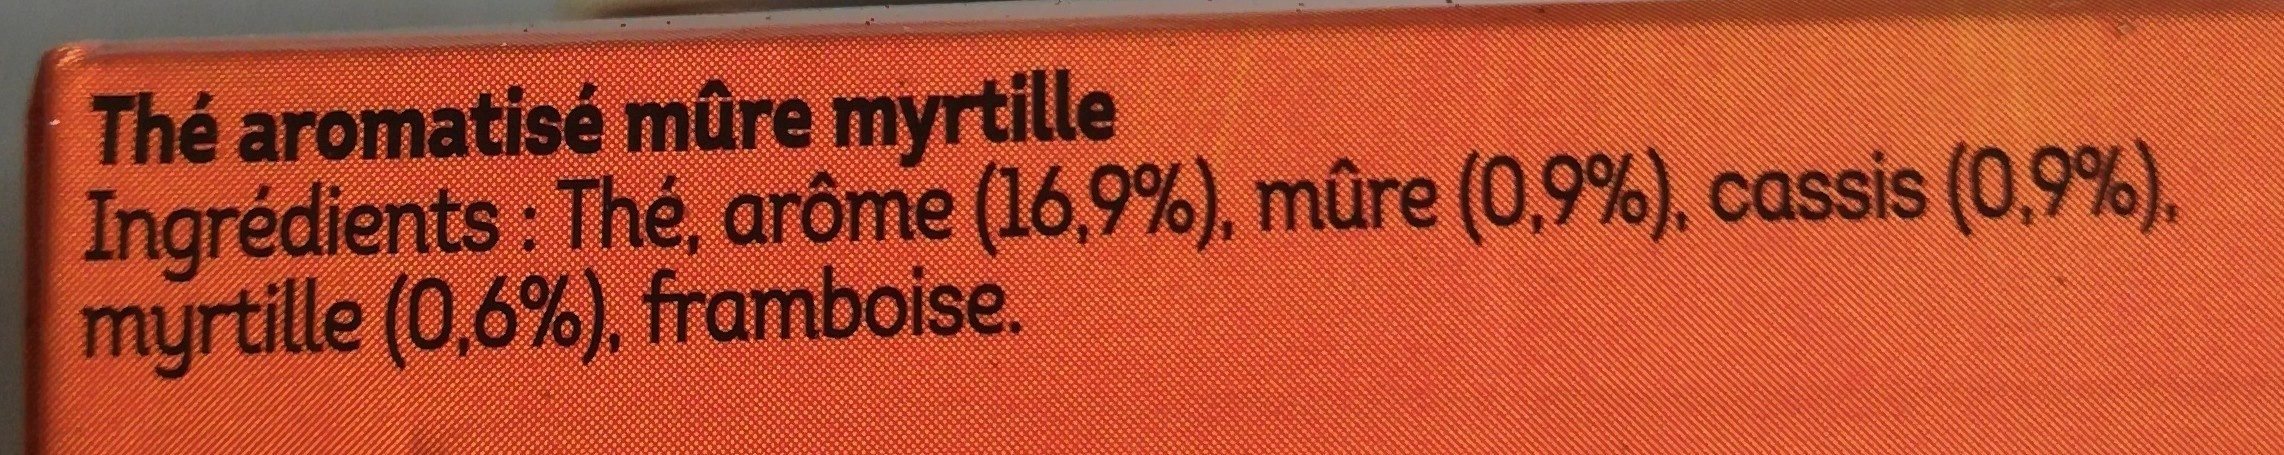 Lipton Thé Mure Myrtille 20 Sachets - Ingredients - fr